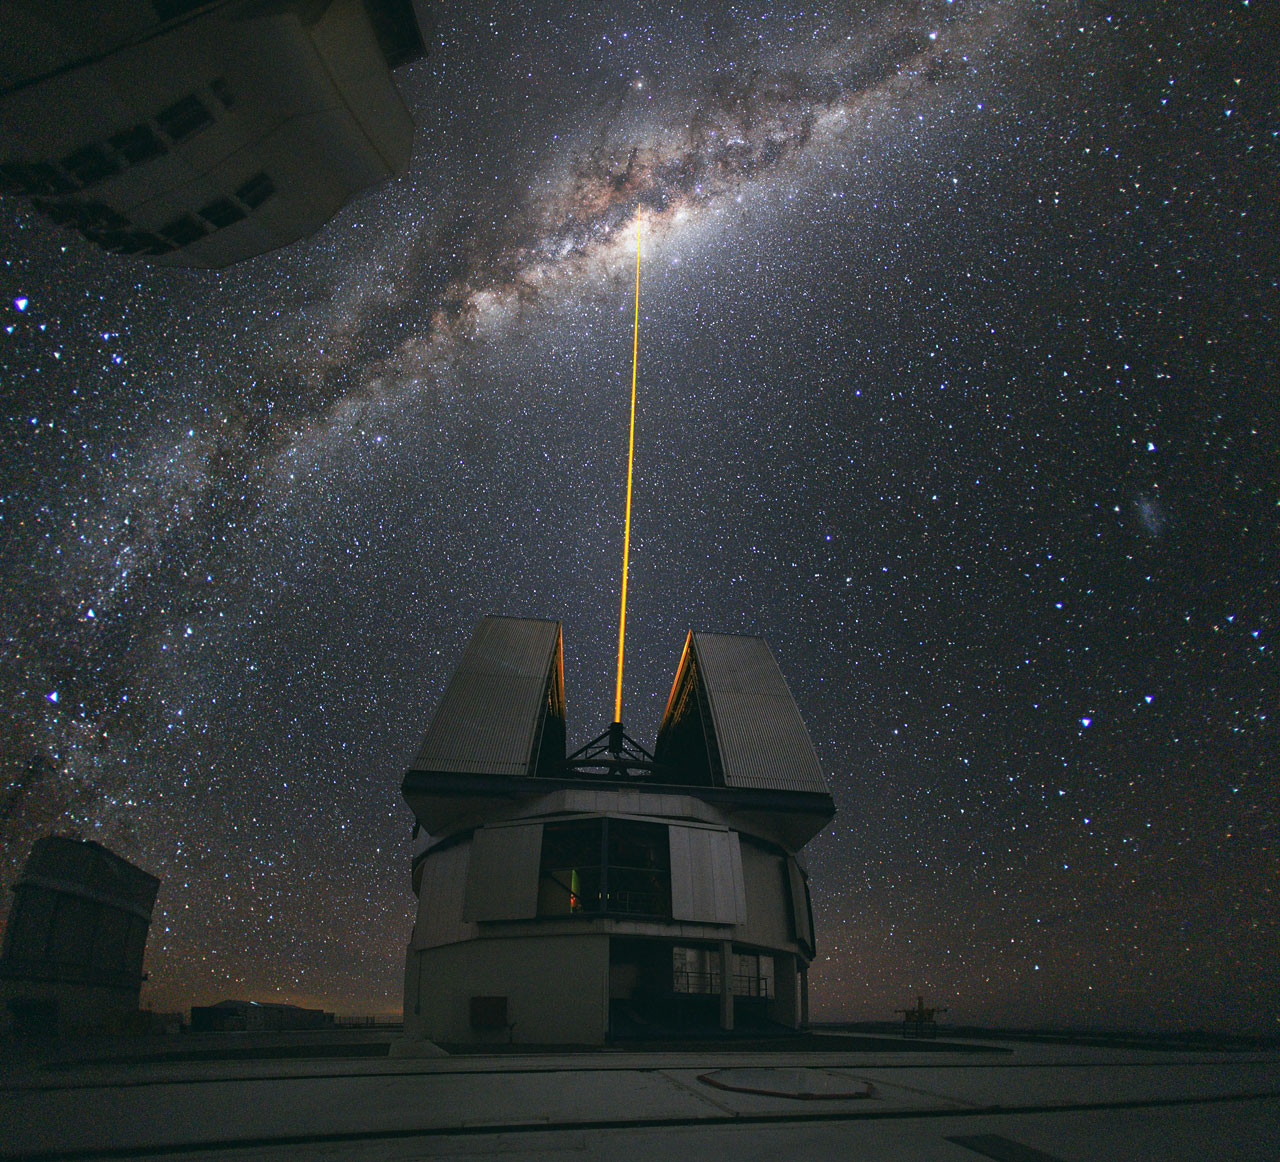 Mounted image 112: A Laser Beam Towards the Milky Way's Centre